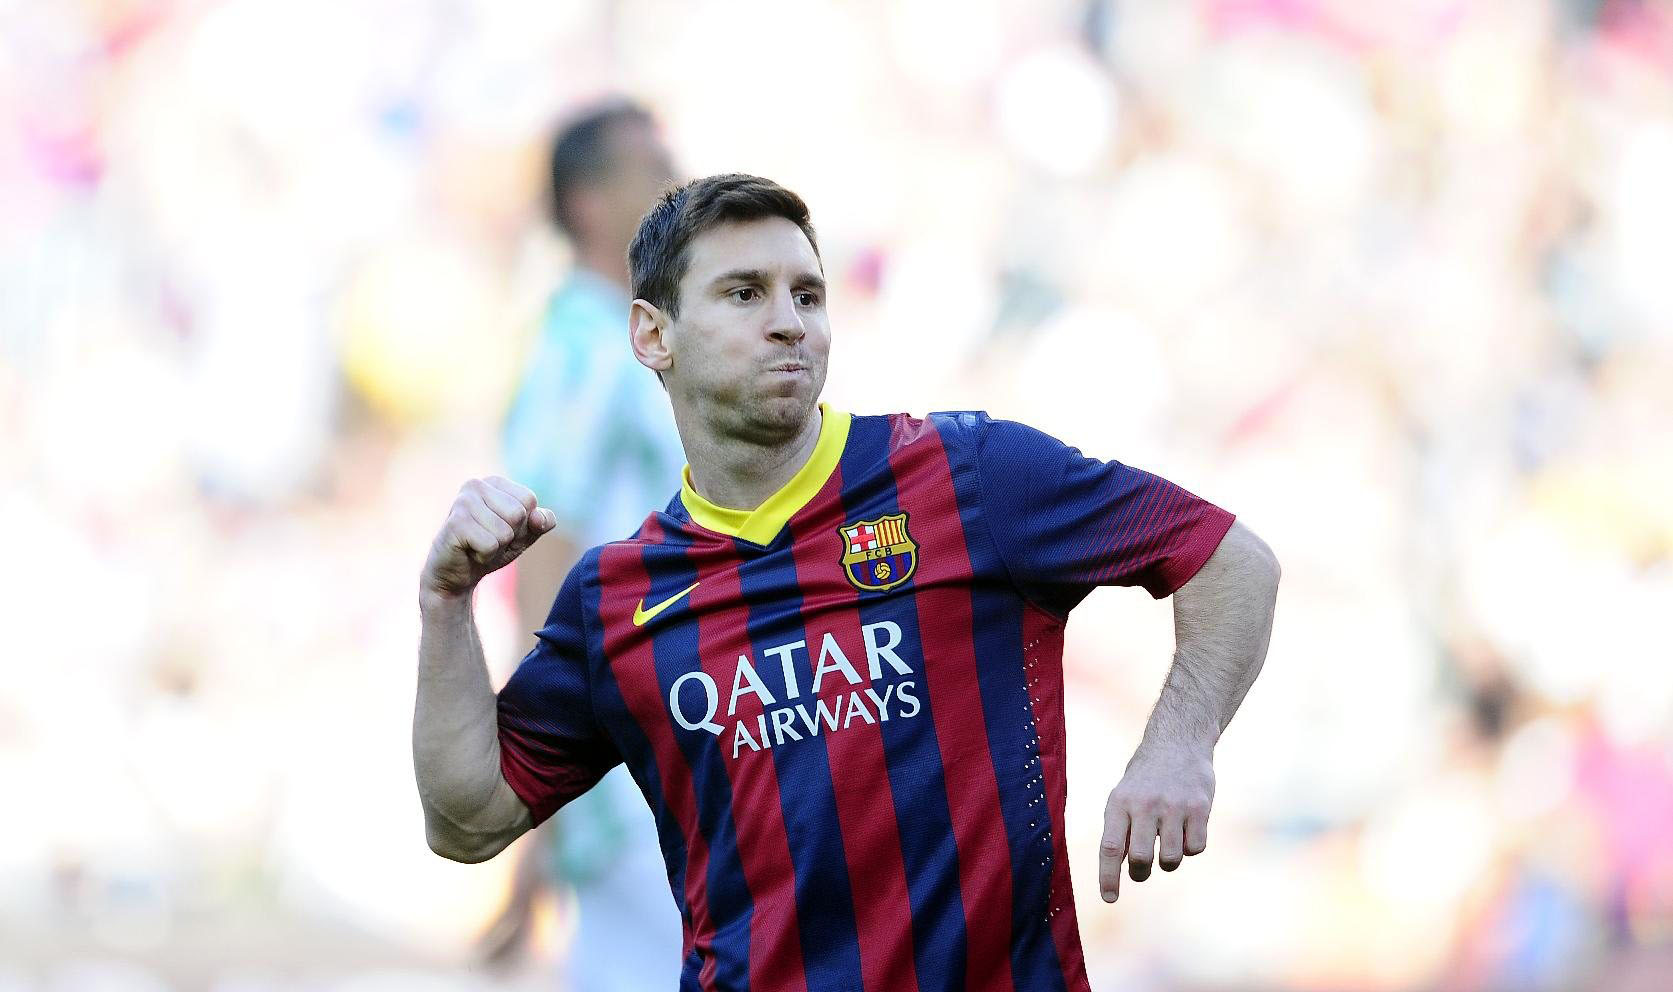 Lionel Messi can't stop scoring